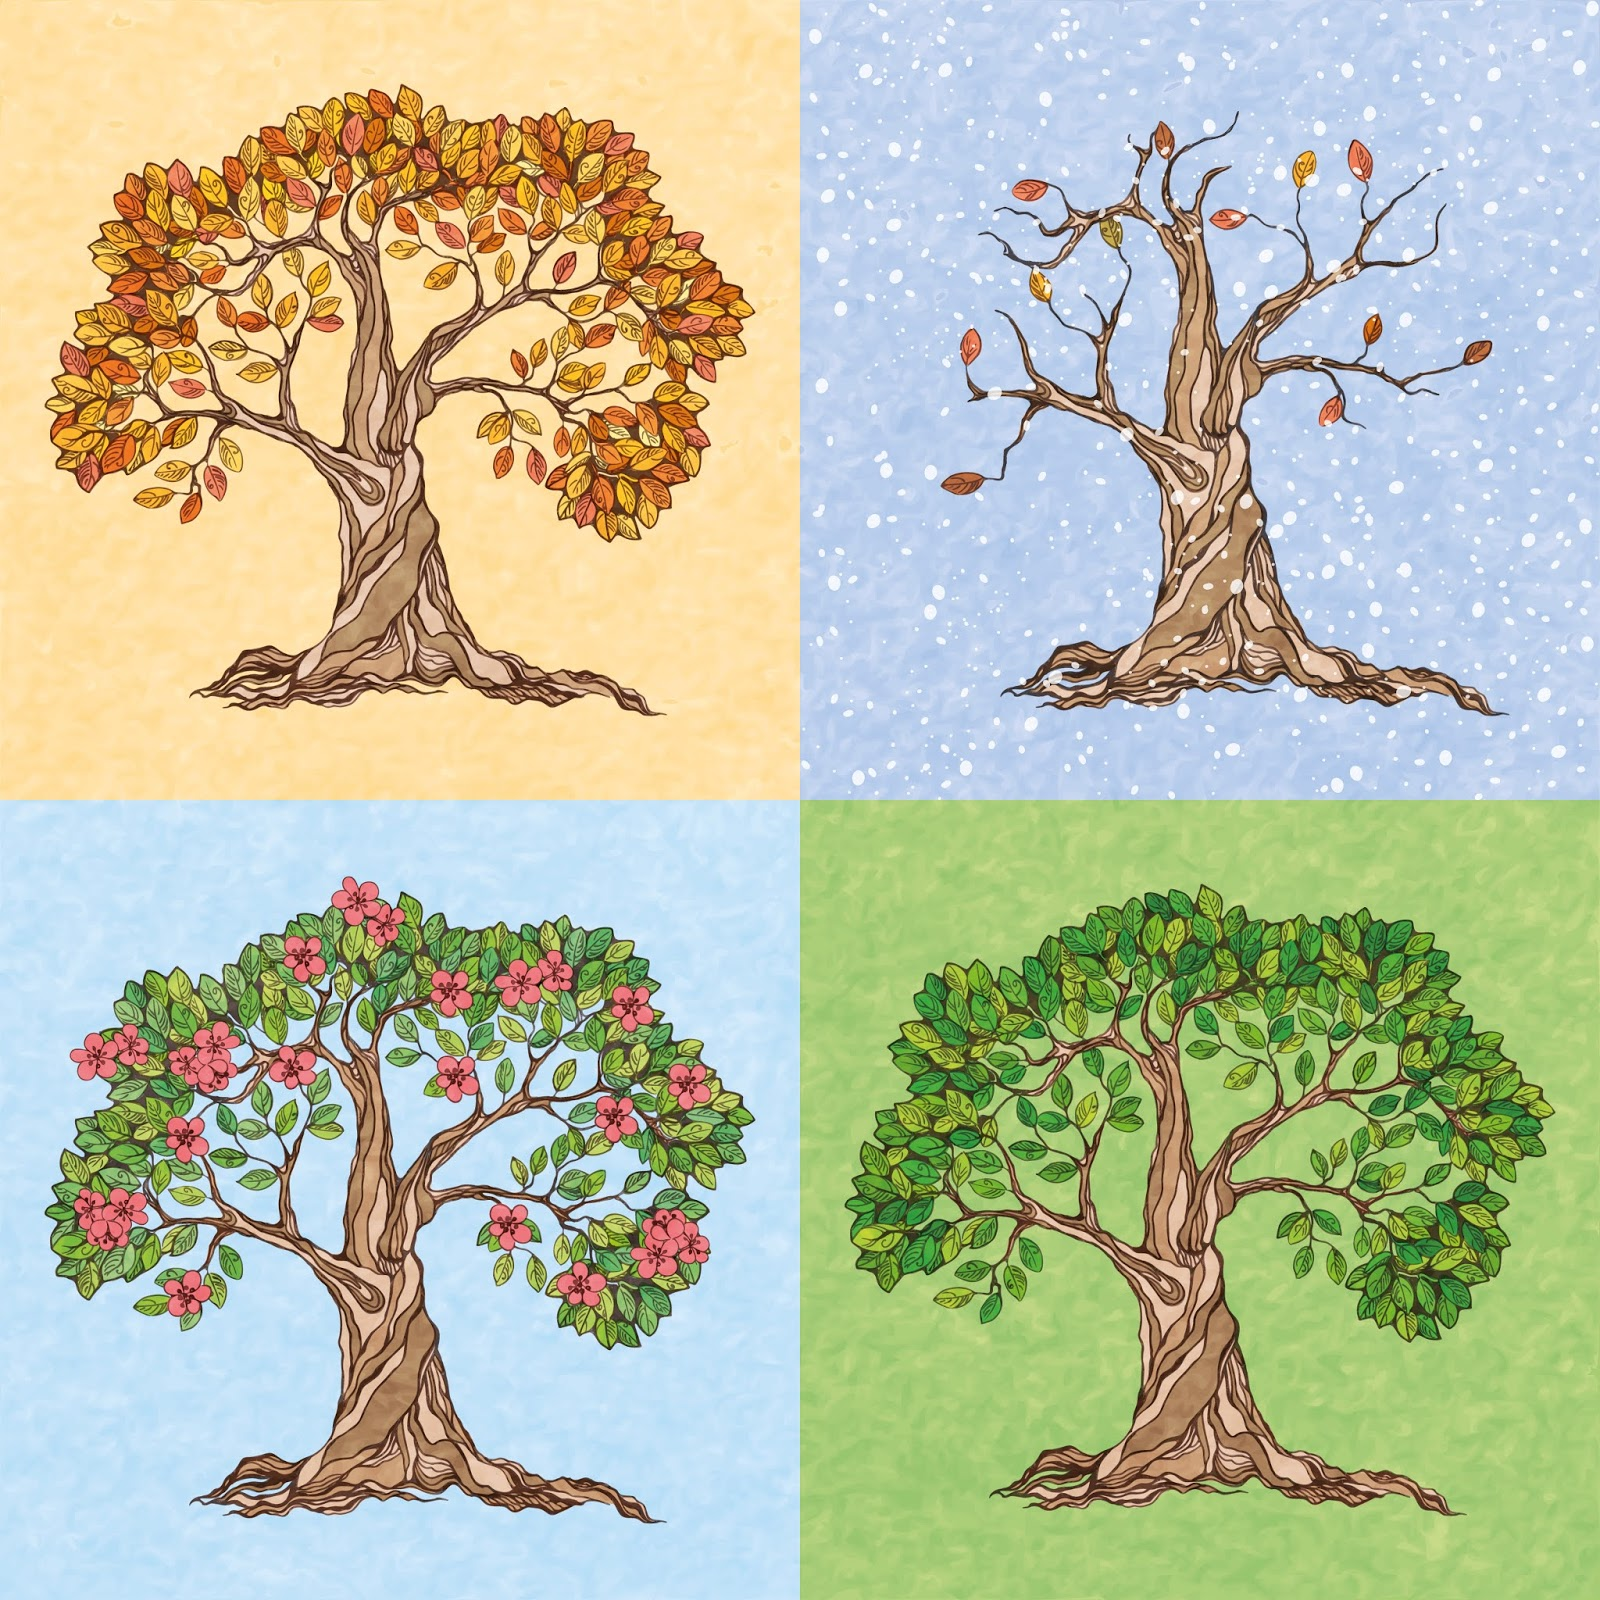 Seasons Summer Autumn Winter Spring Tree Free Download Vector CDR, AI, EPS and PNG Formats